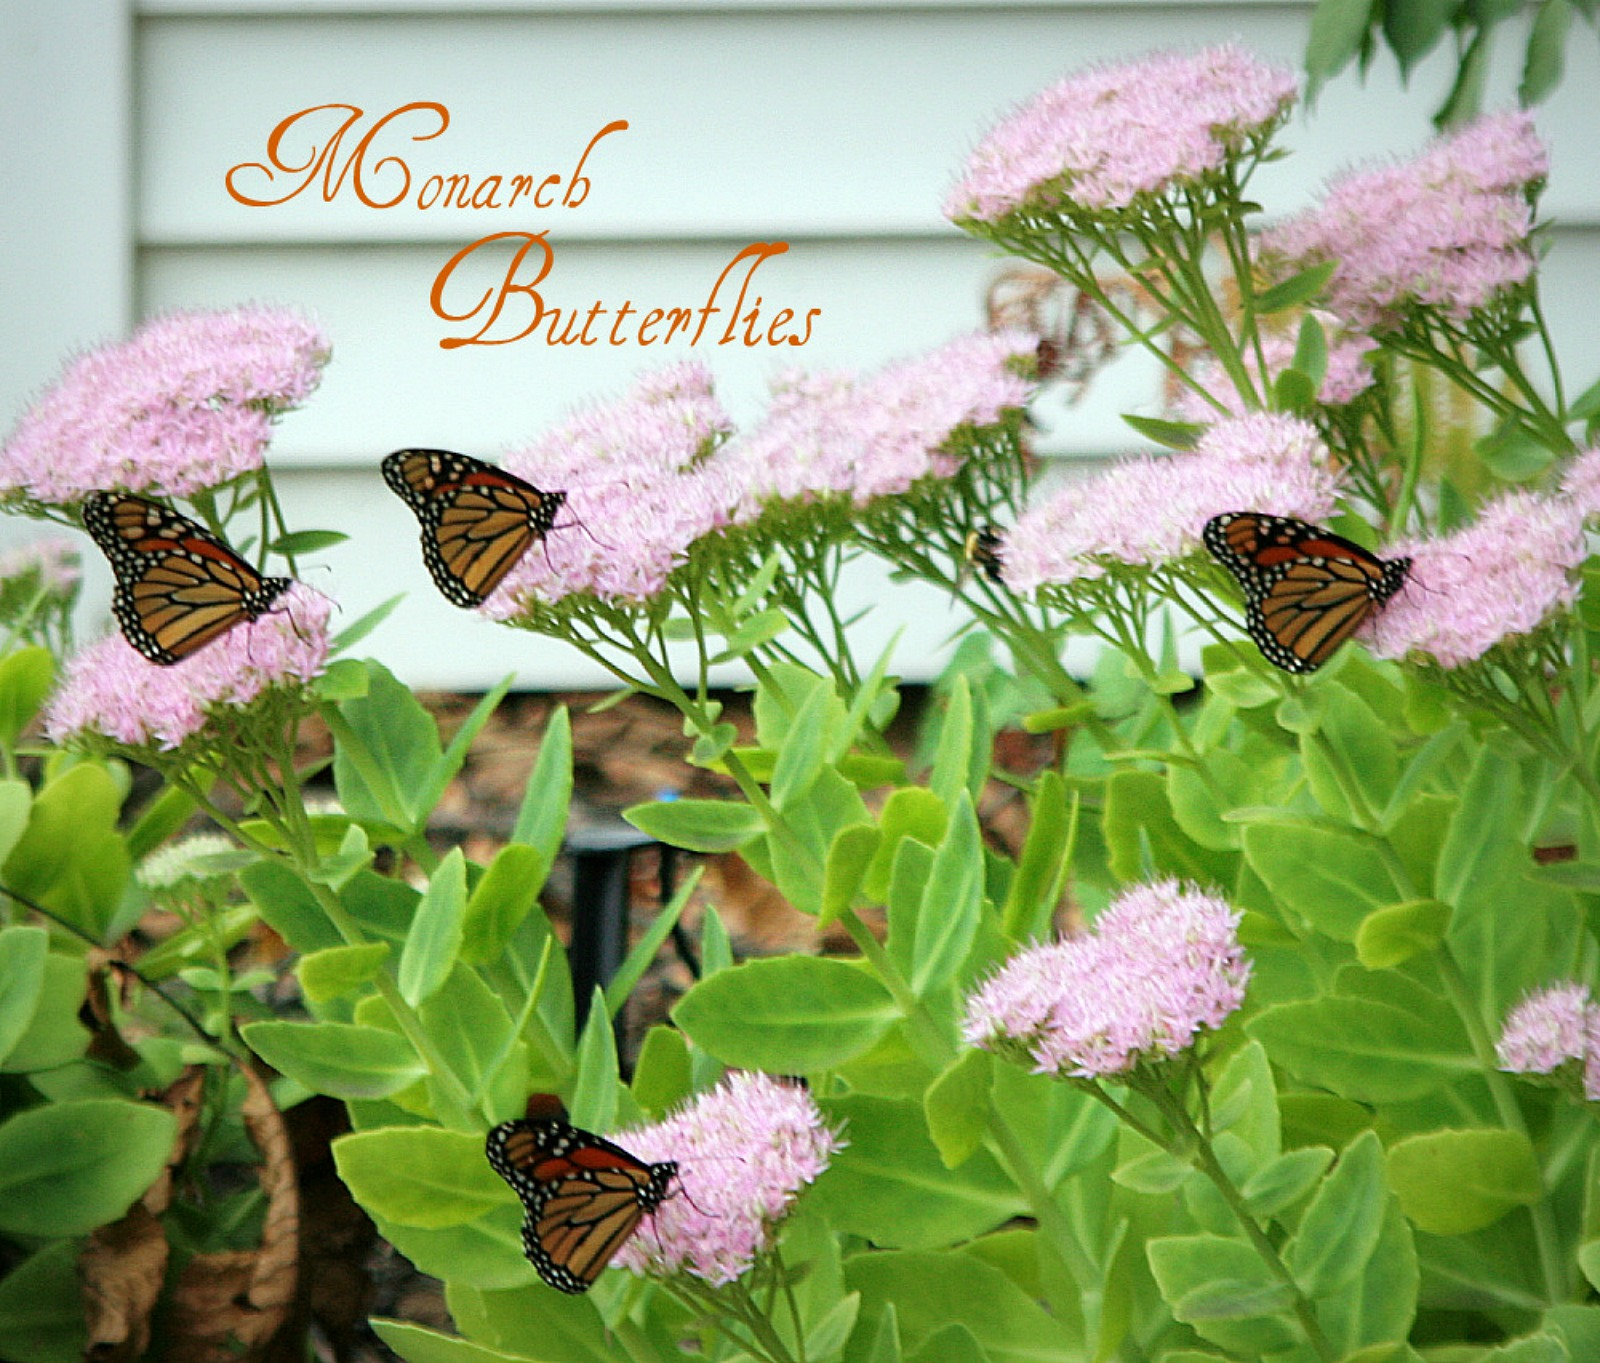 Monarch butterflies visit blooming perennial sedum plant, fueling up before their annual journey, flying thousands of miles to overwintering in Mexico.